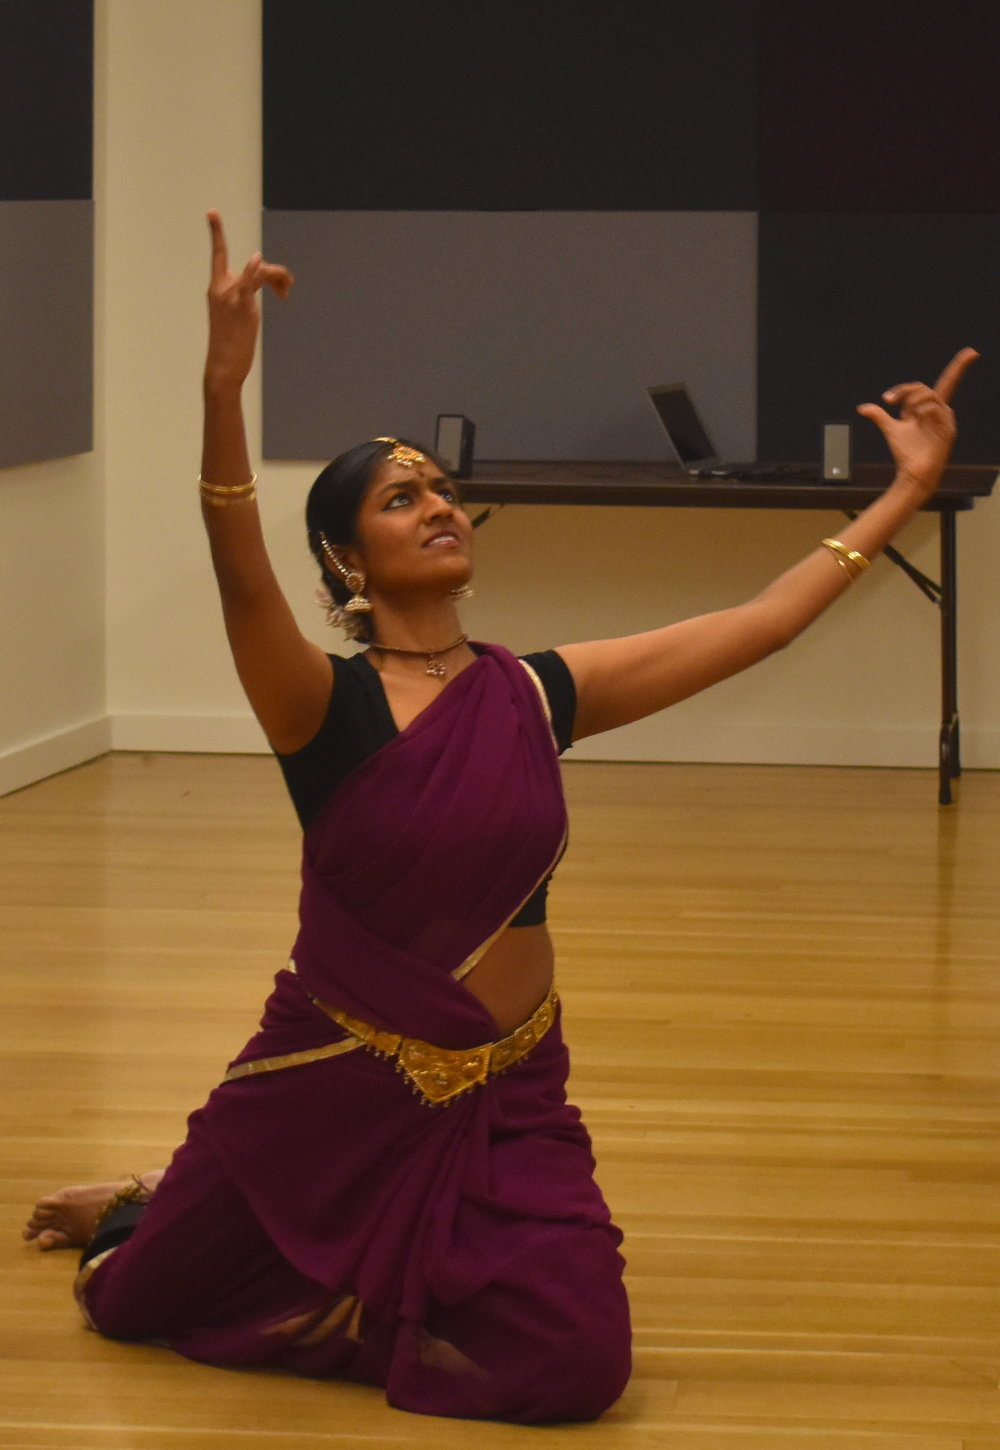 Shilpa  Darivemula brings her Aseemkala Initiative, marrying traditional Indian dance and contemporary medical practice, back to the IHRAF stage.